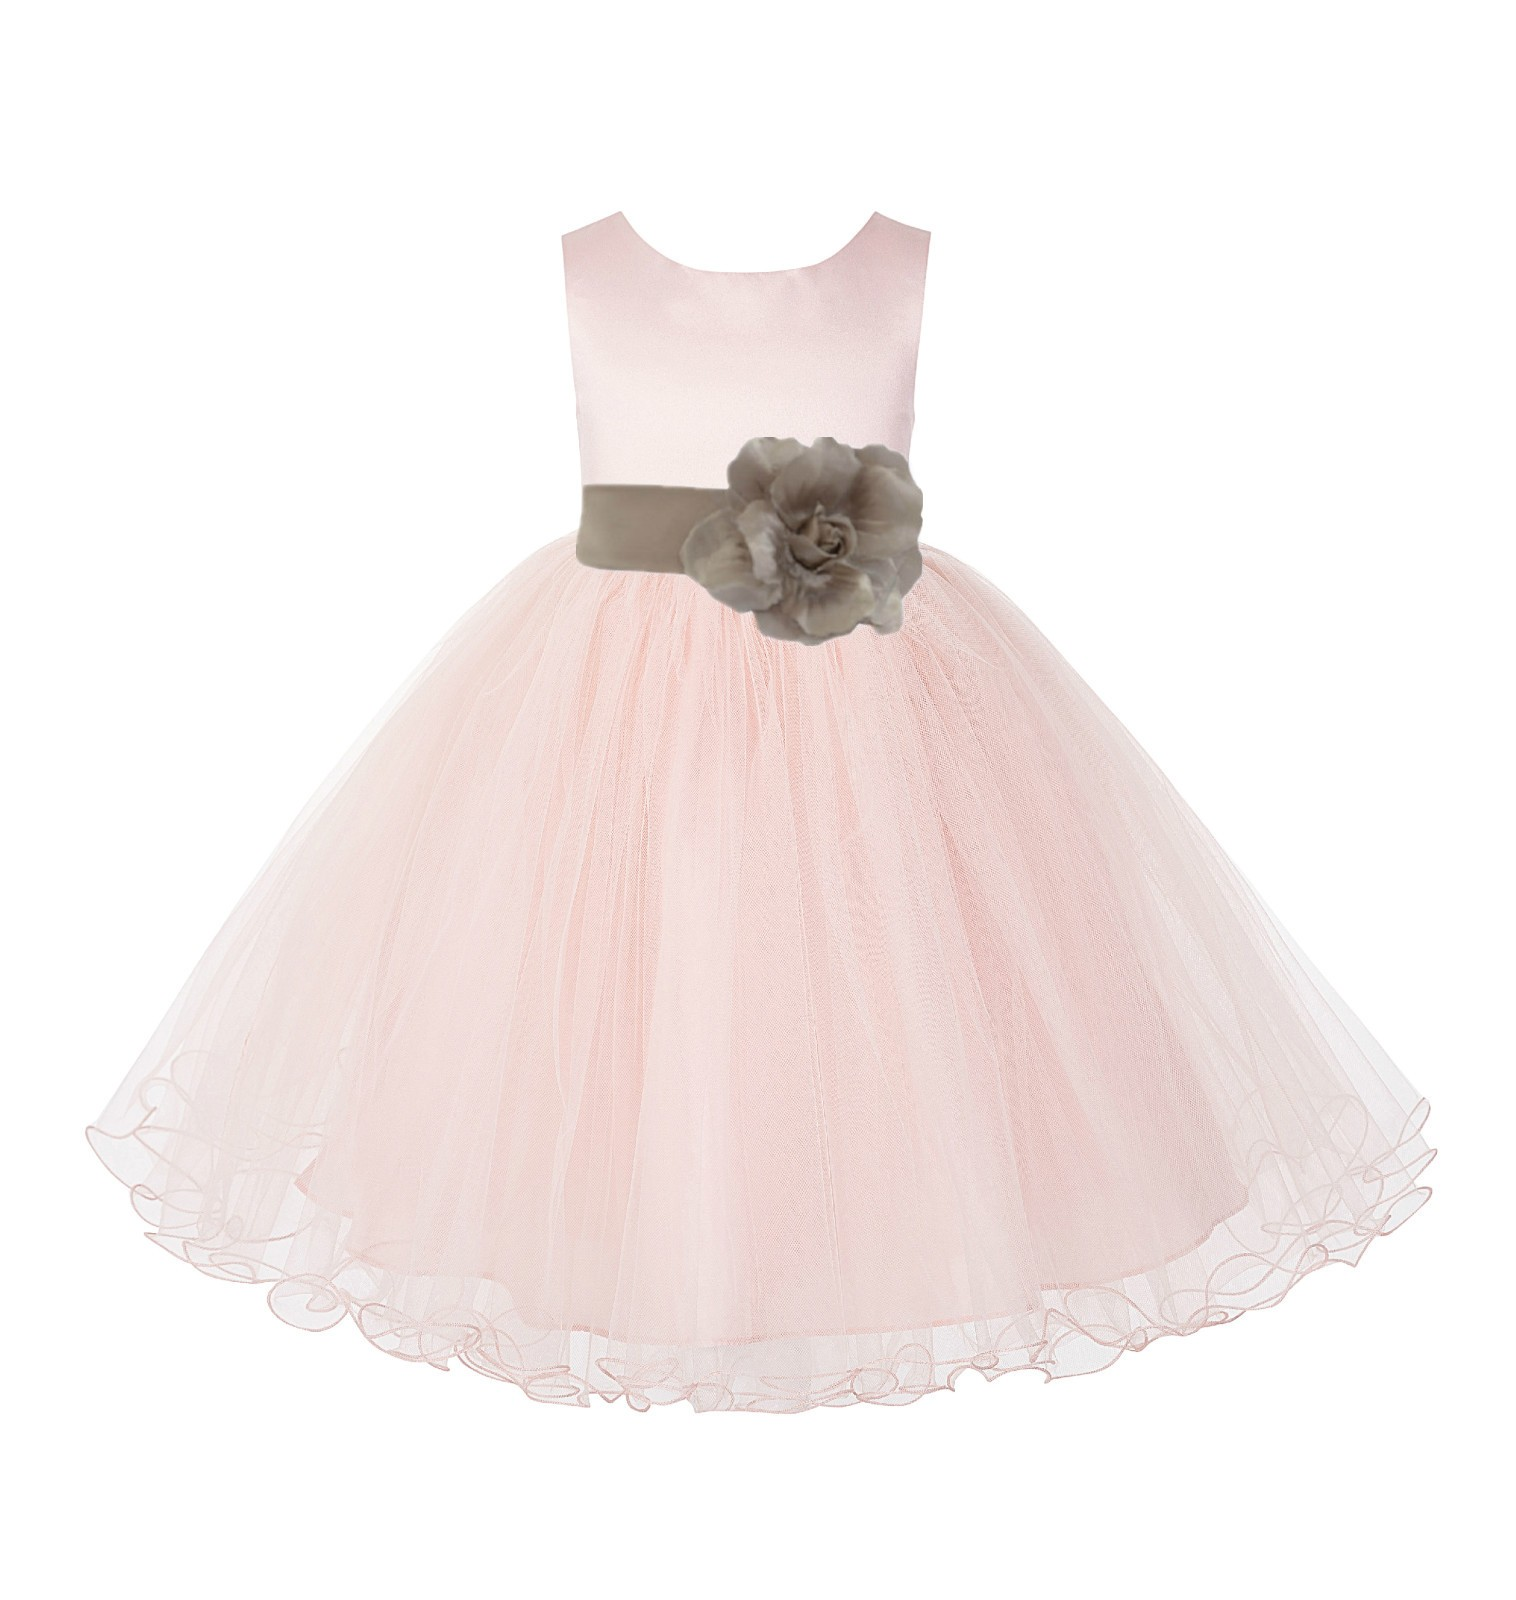 Blush Pink / Champagne Tulle Rattail Edge Flower Girl Dress Pageant Recital 829S